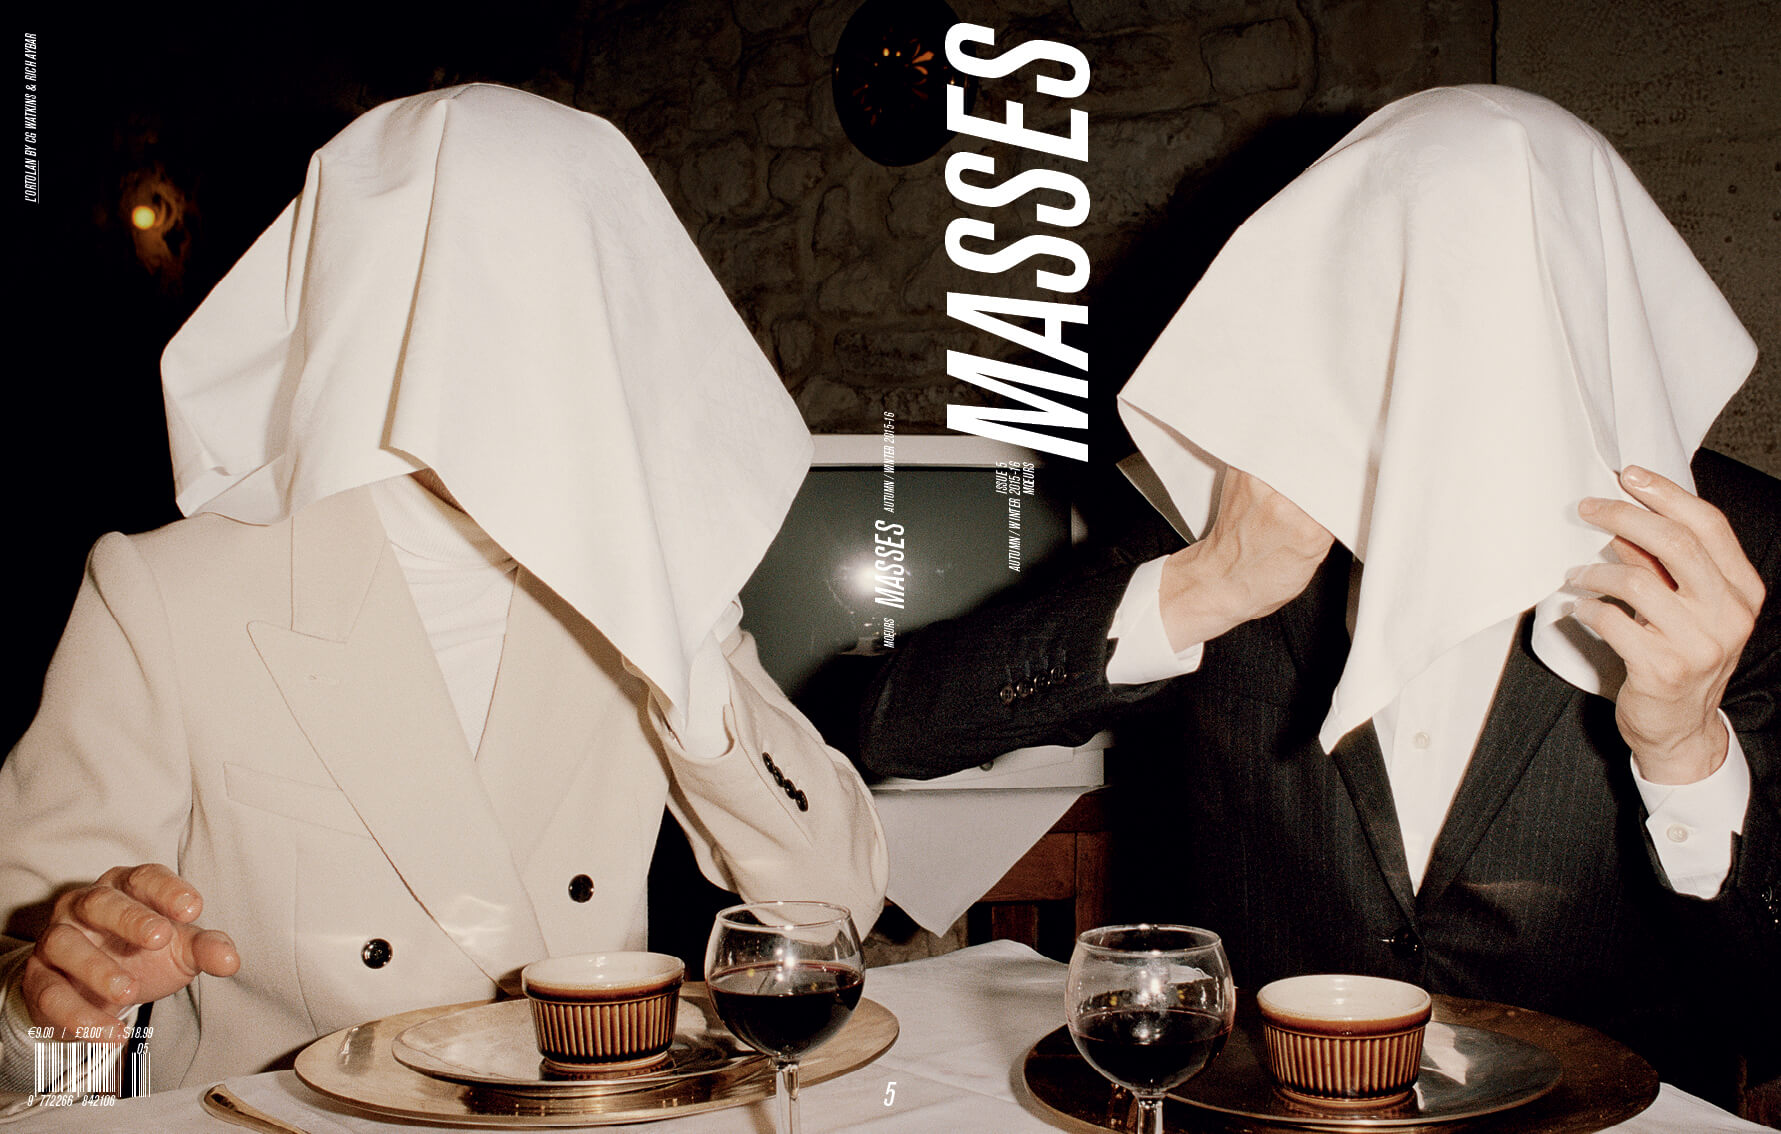 MASSES MAGAZINE ISSUE 5 COVER – L'ORTOLAN, ERIC DIULEIN AND SACHA QUINTIN PHOTOGRAPHED BY CG WATKINS, FASHION BY RICH AYBAR